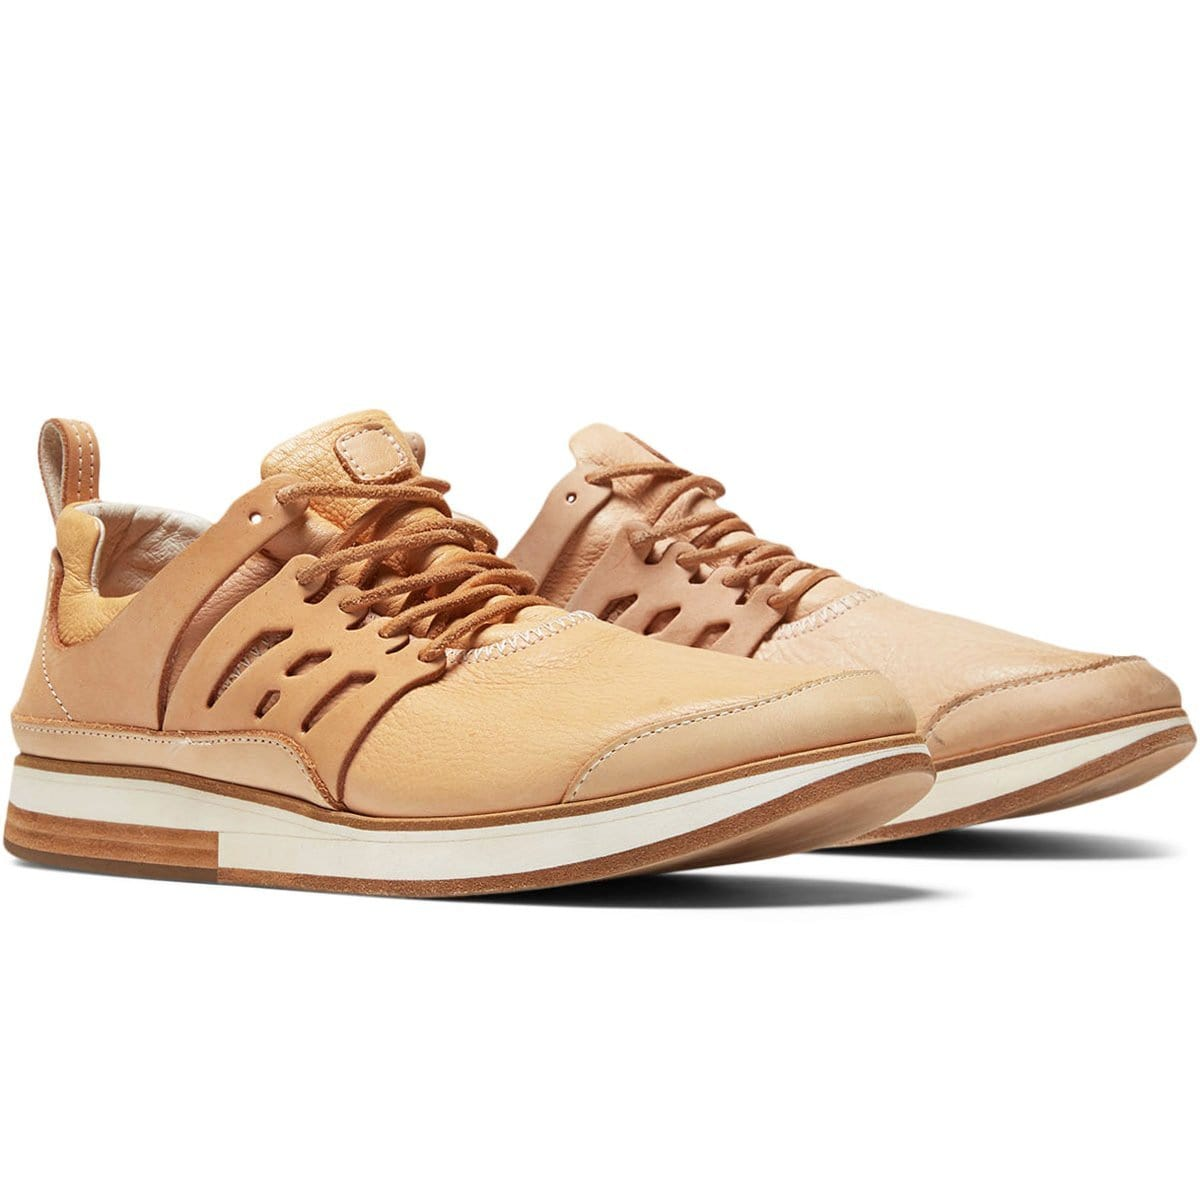 Hender Scheme Shoes MANUAL INDUSTRIAL PRODUCT 12